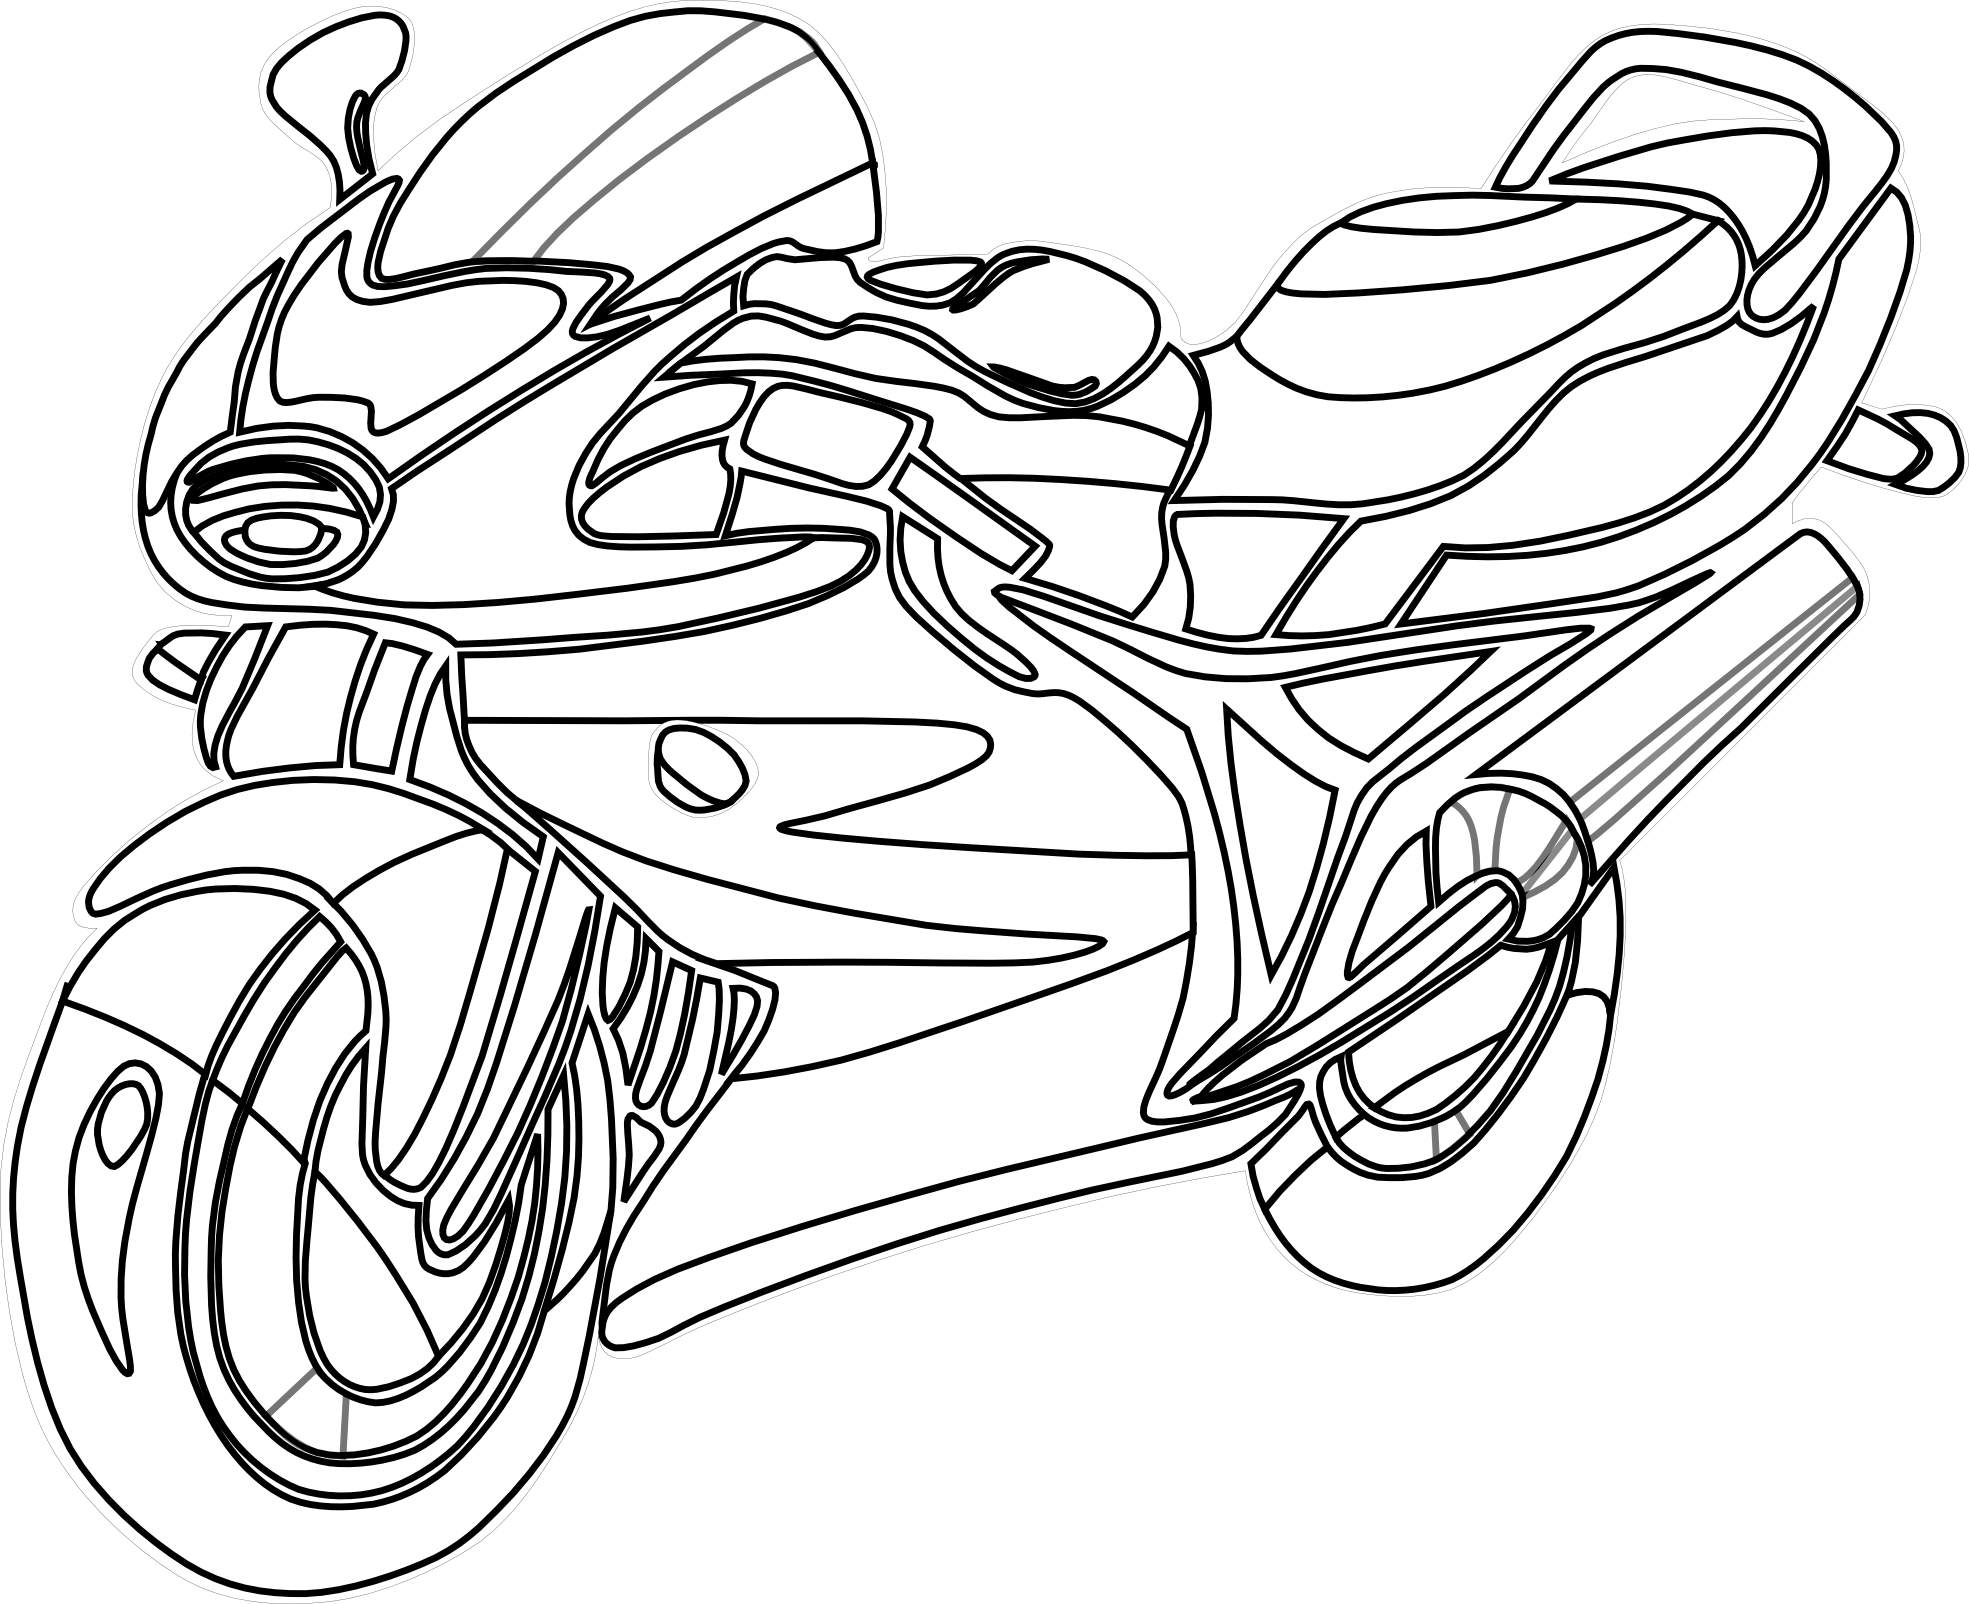 coloring motorcycle pages free printable motorcycle coloring pages for kids pages motorcycle coloring